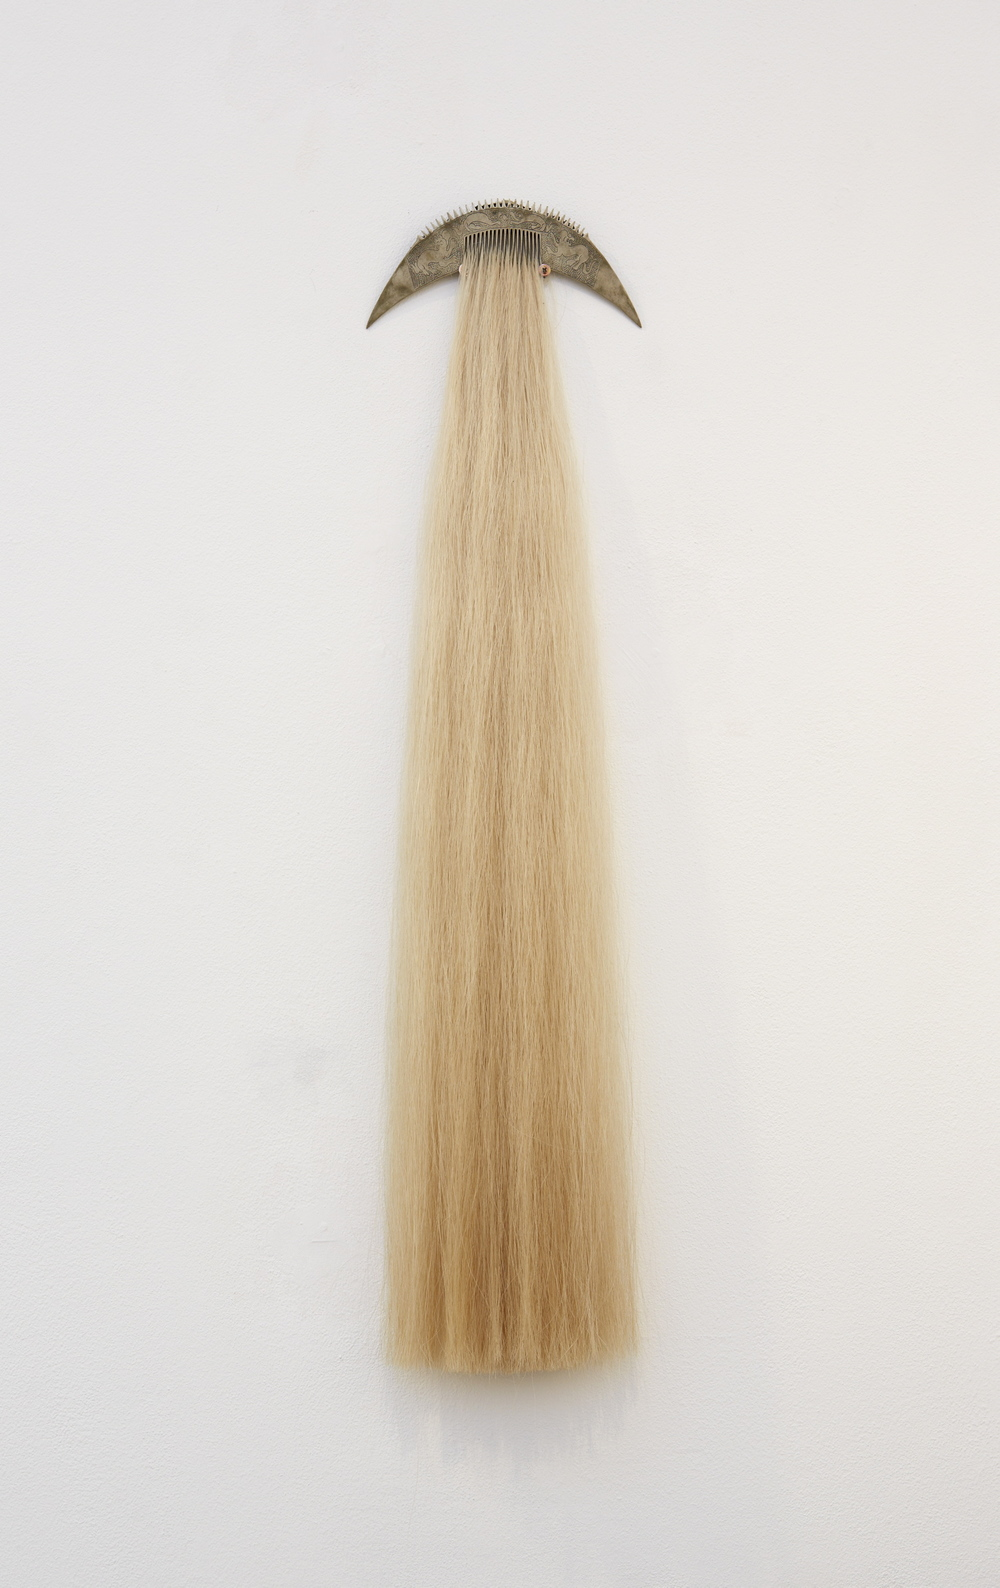 Anne graham, comb, photograph, 2012